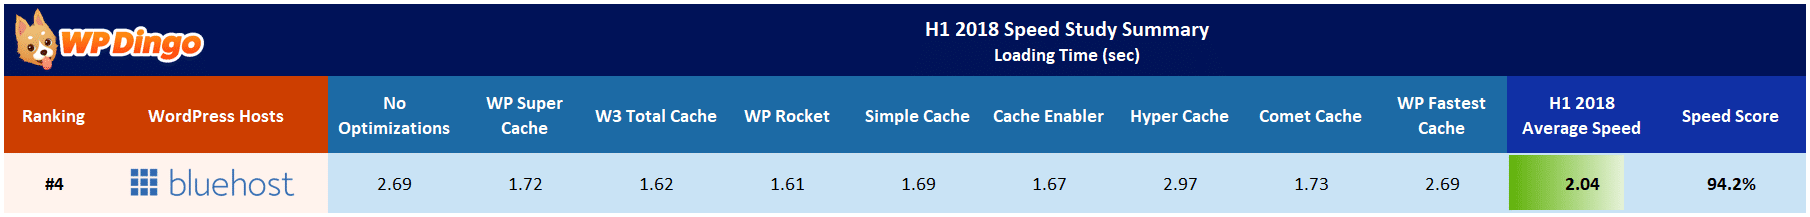 Bluehost Speed Test Results Table - Jan 2018 to Jul 2018